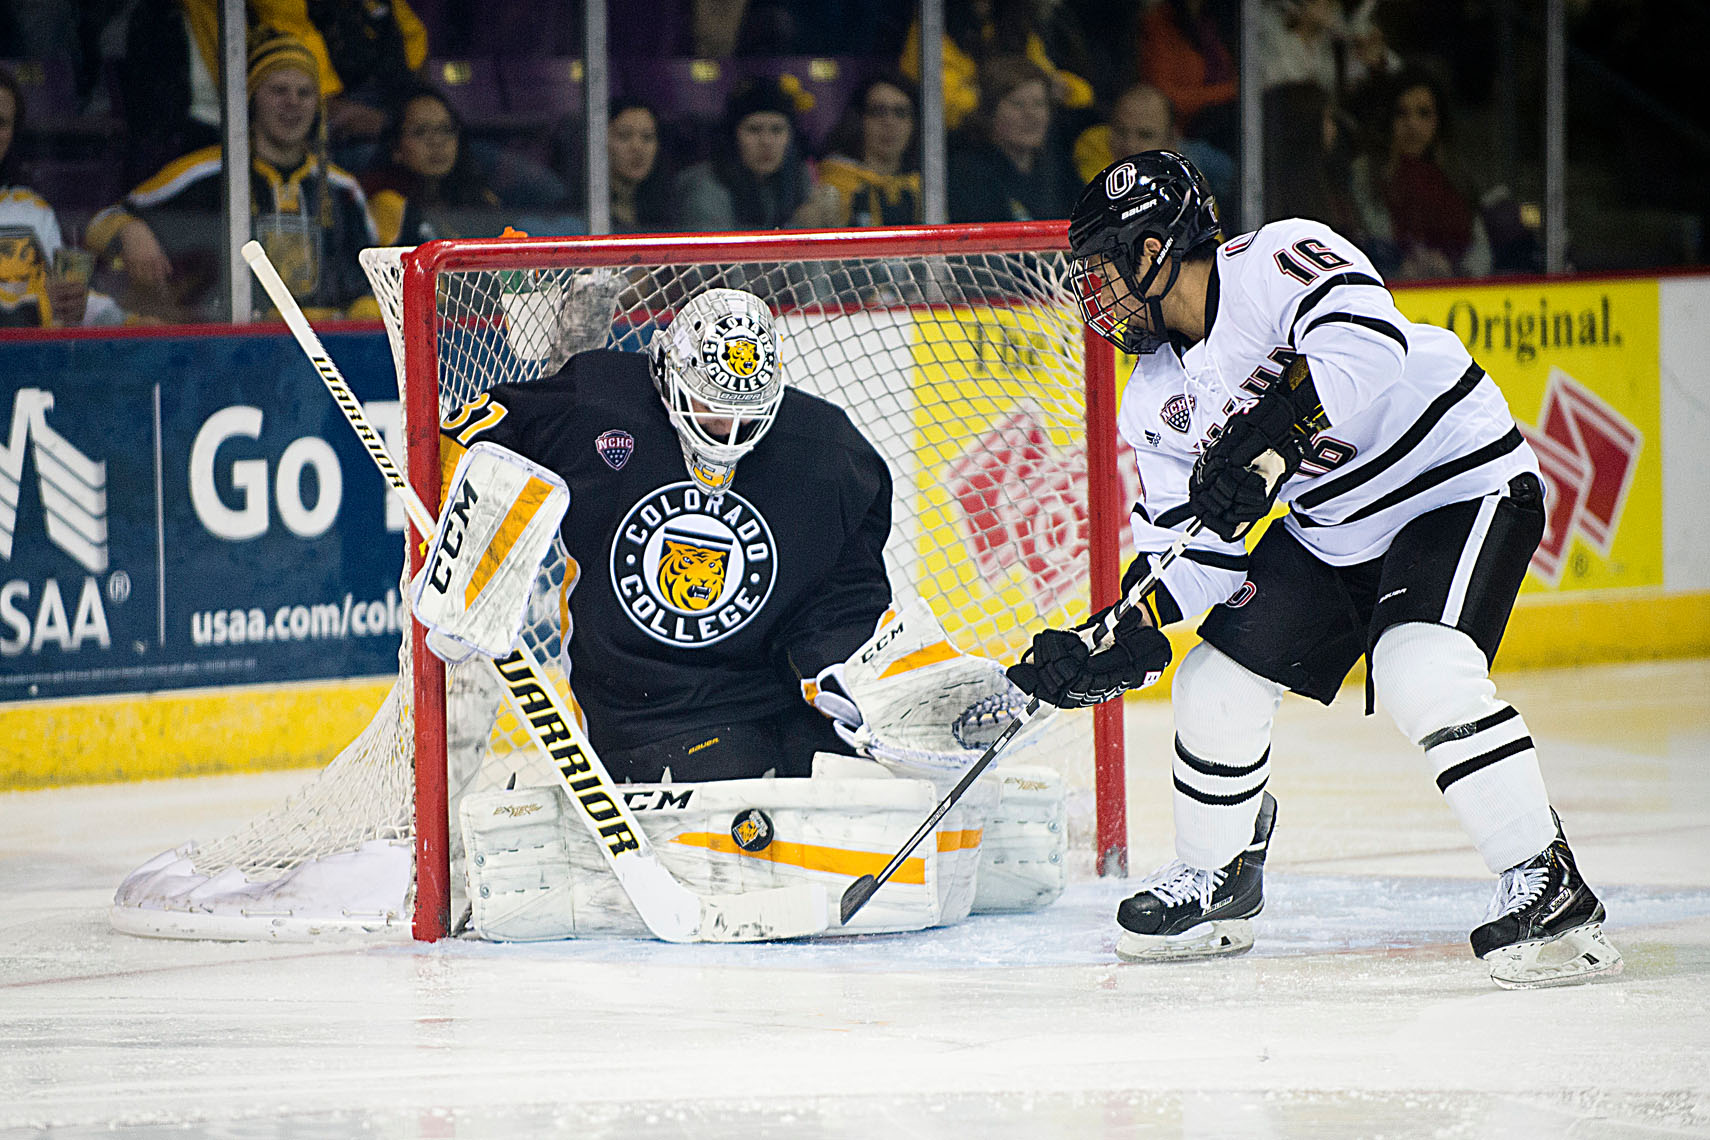 Colorado College Hockey, 2015-16 season